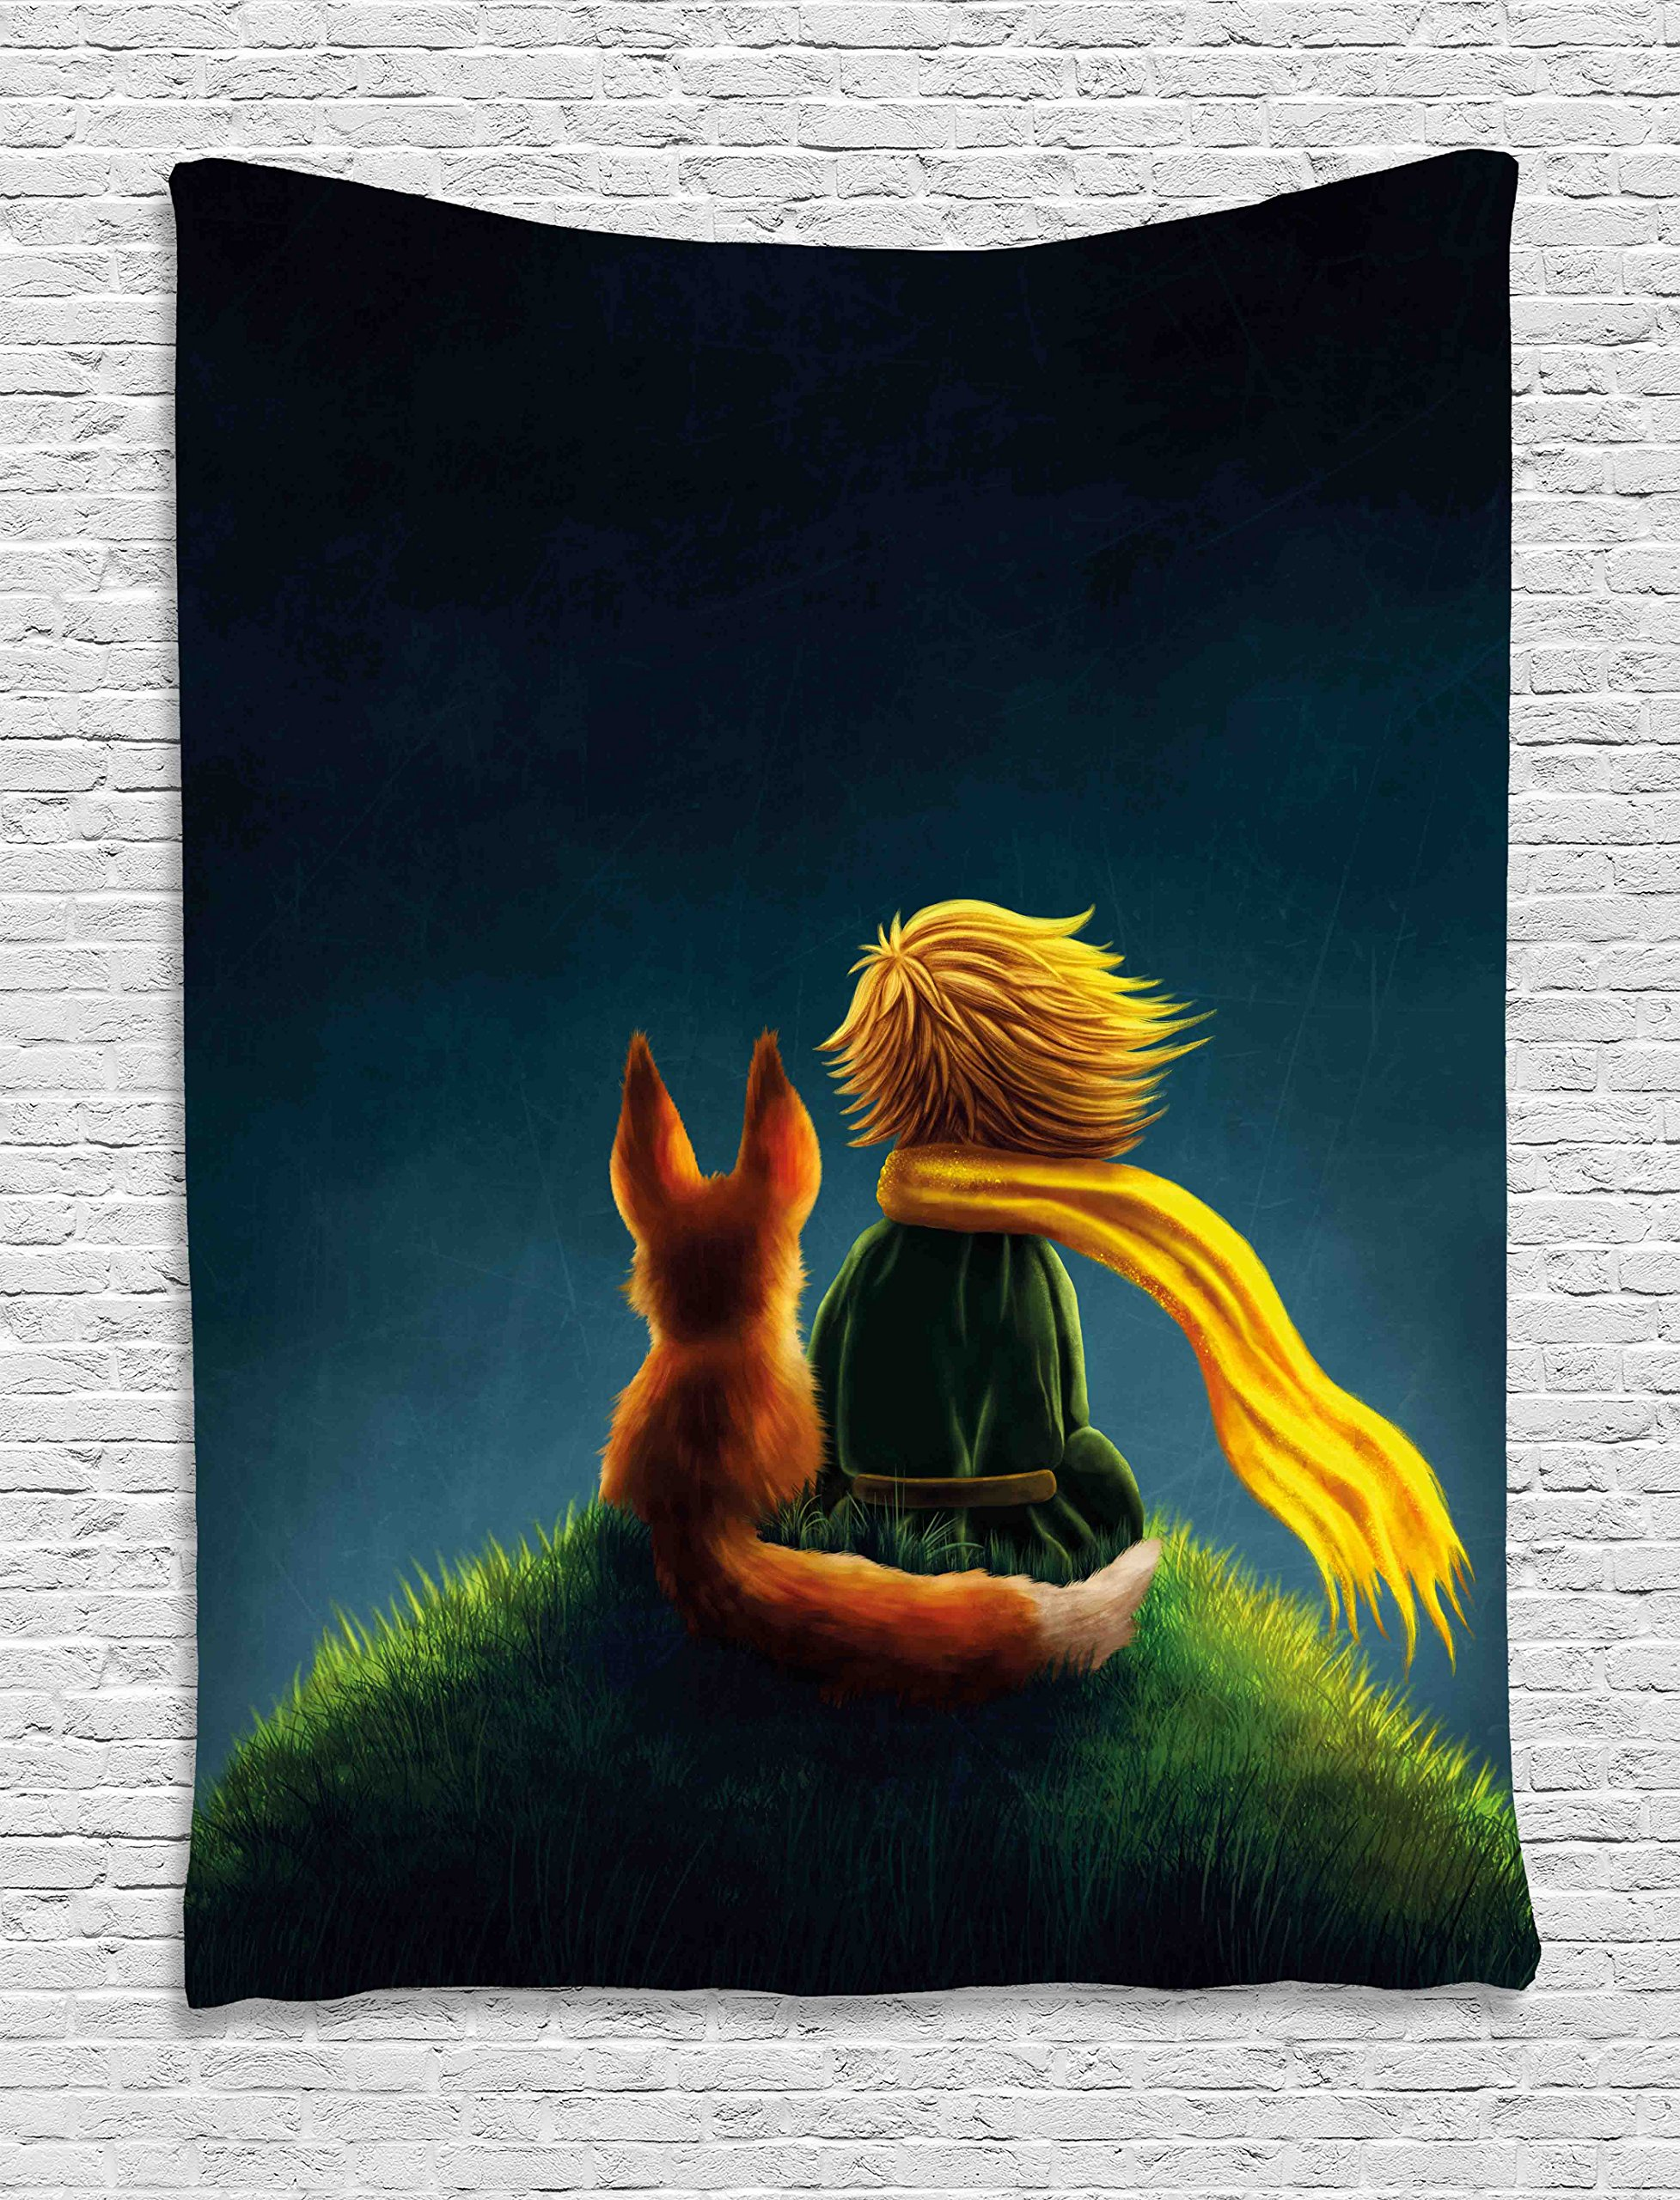 Ambesonne Kids Decor Tapestry by, Childrens Decor Little Prince and the Fox Looking at the Sky Pattern, Wall Hanging for Bedroom Living Room Dorm, 40WX60L Inches, Dark Blue Fern Green